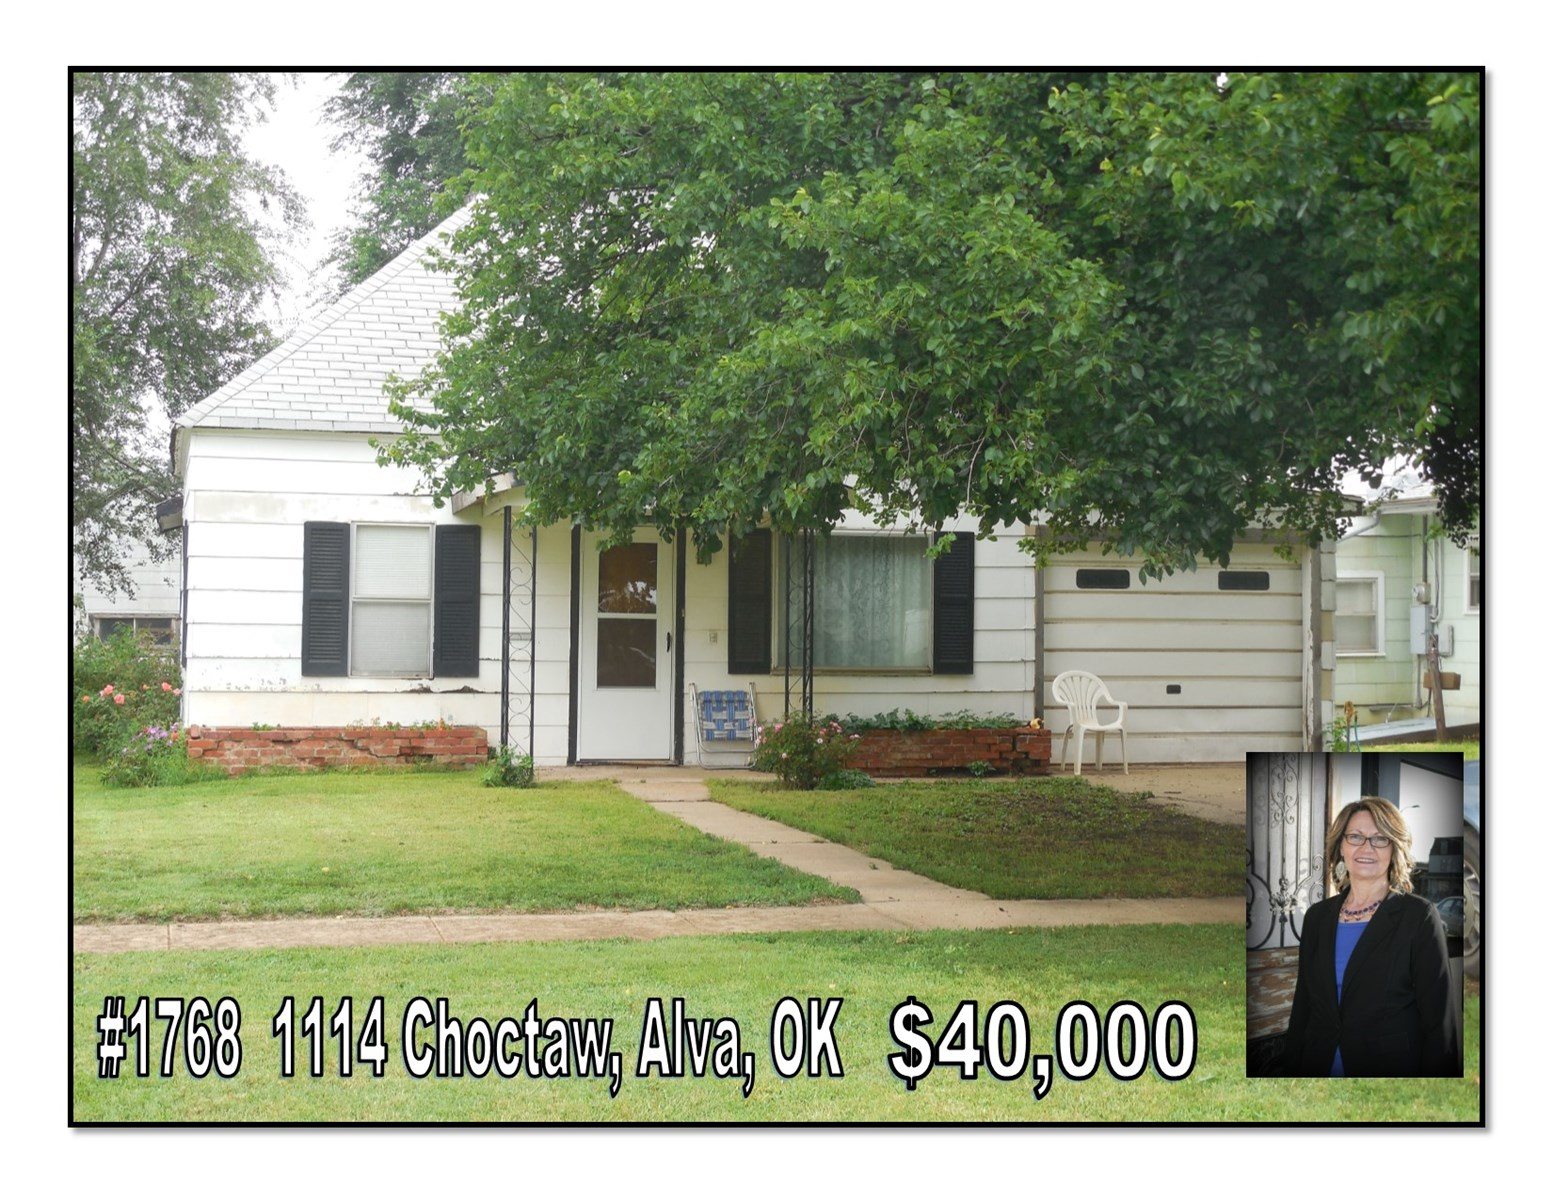 2 Bedroom Home for Sale Close to Middle School Alva OK